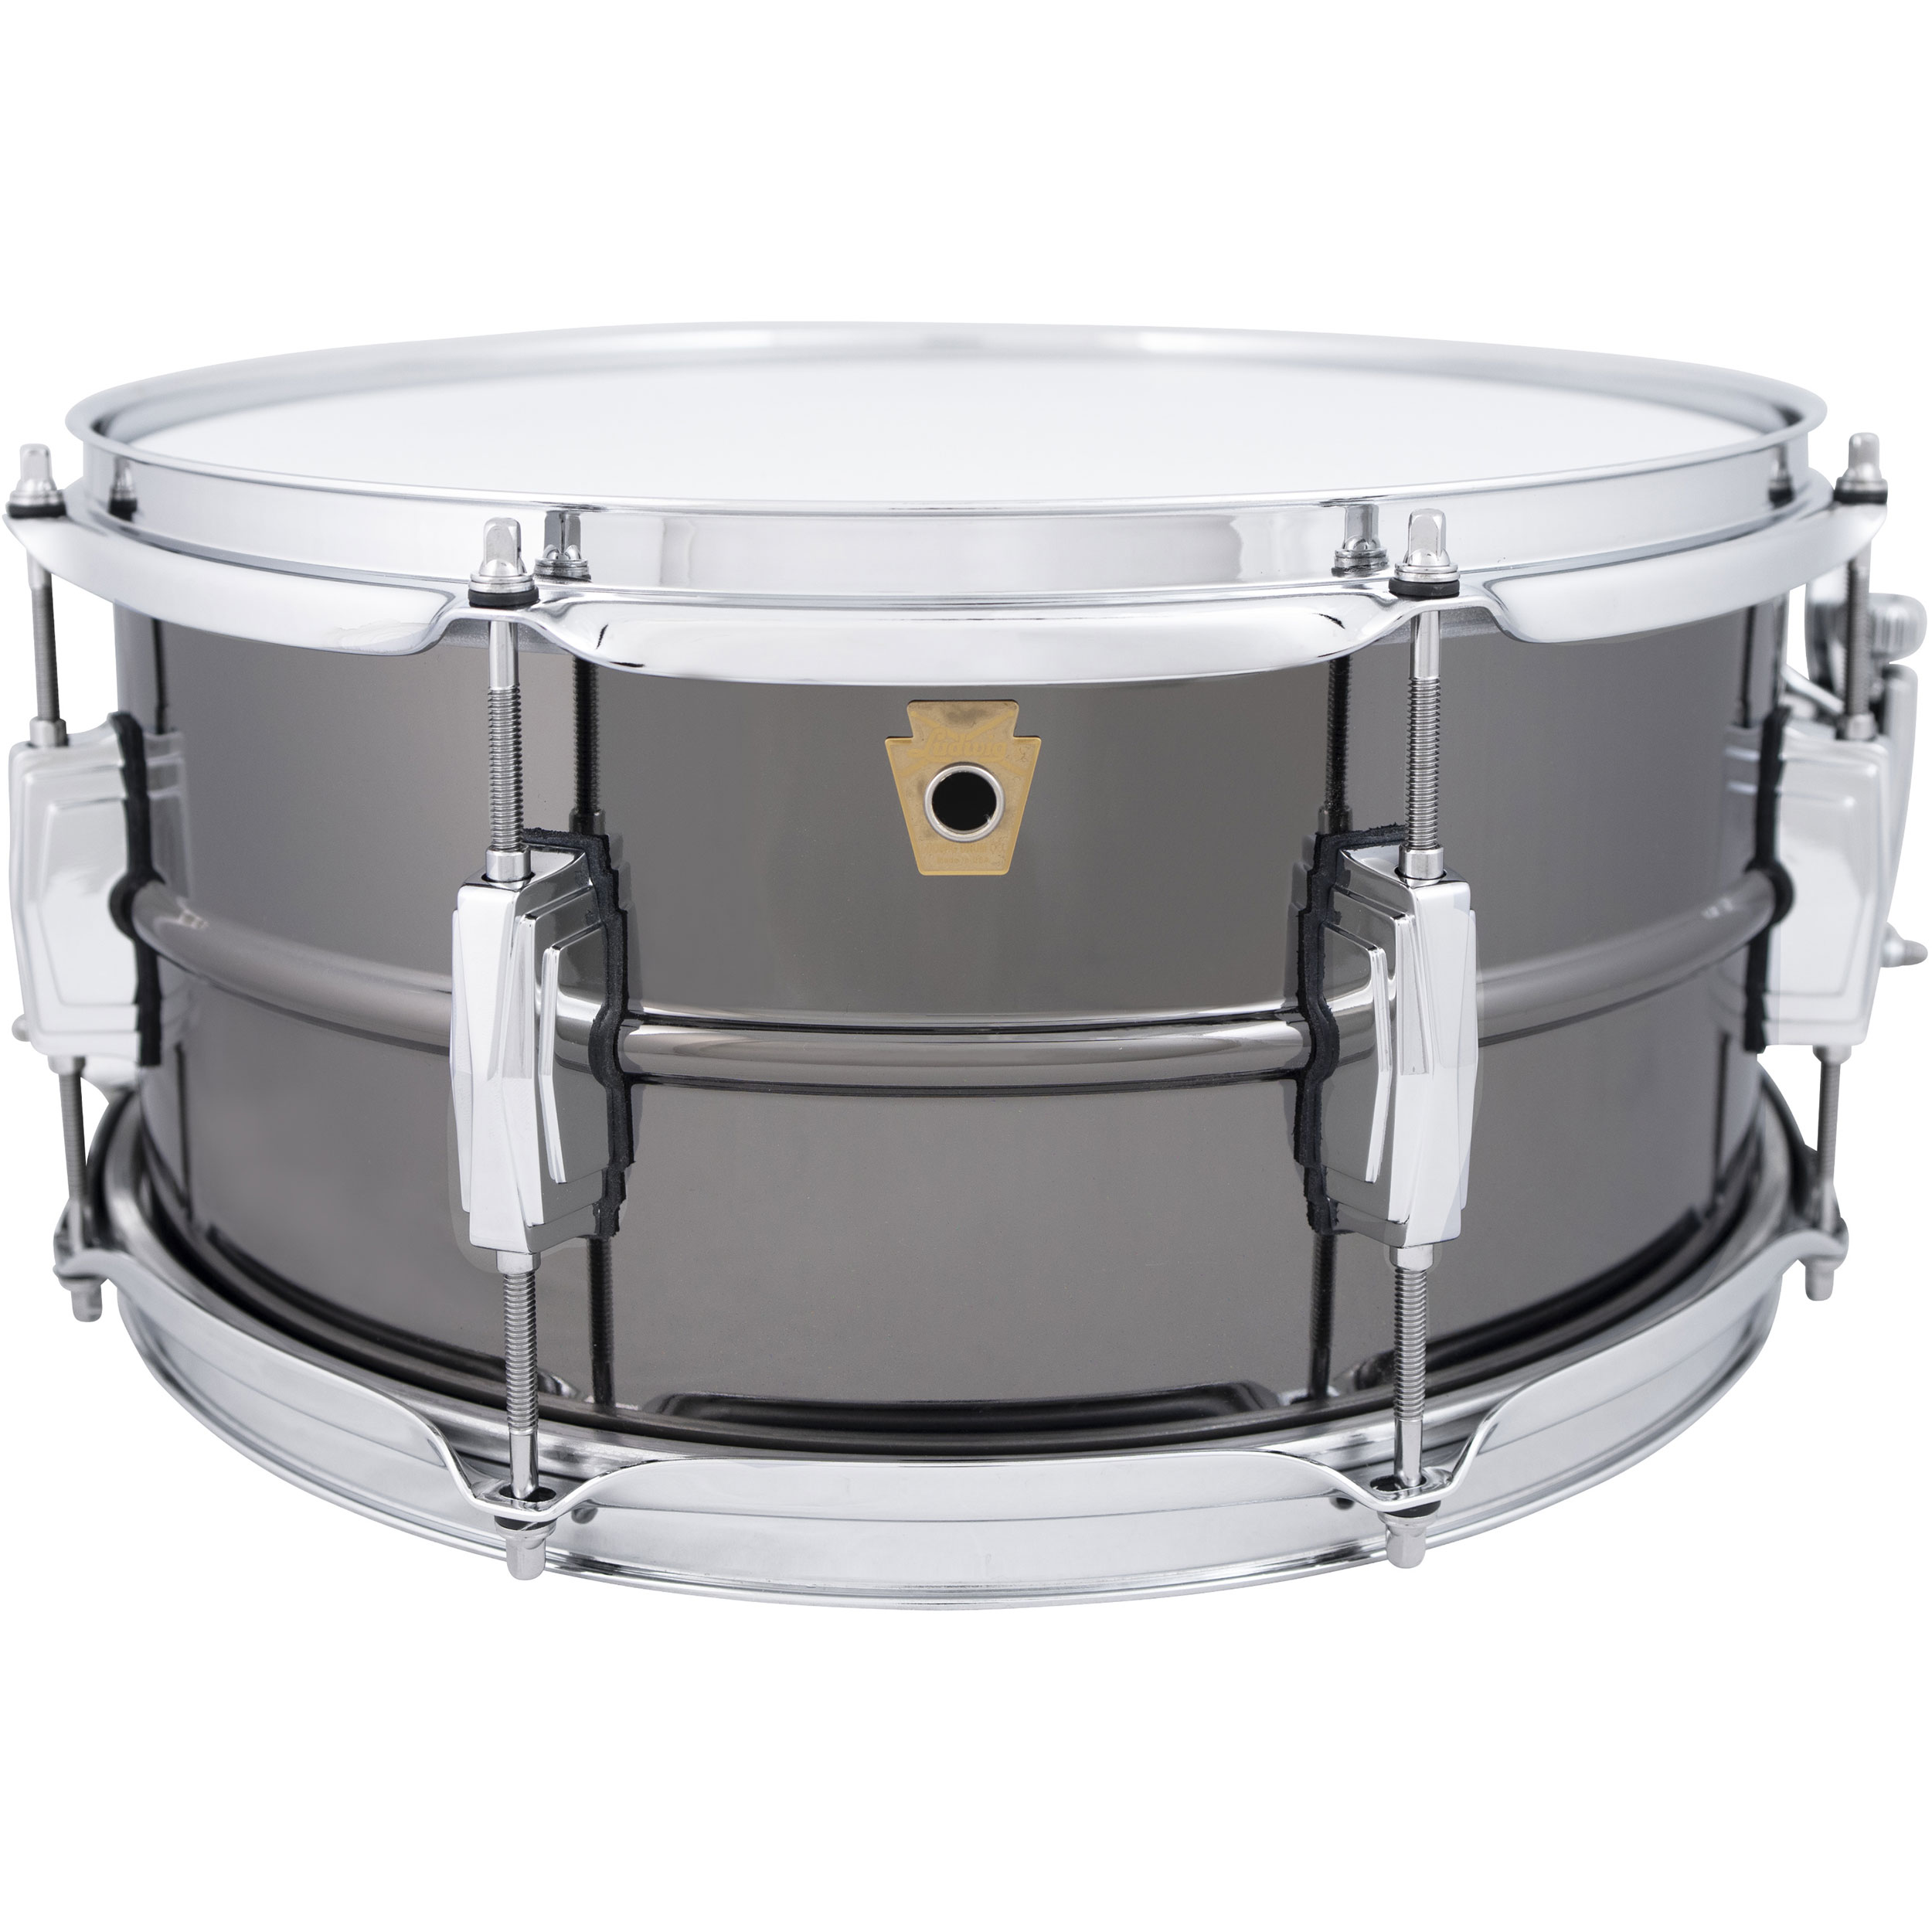 "Ludwig 6.5"" x 14"" 8-Lug Black Beauty Snare Drum with Imperial Lugs"